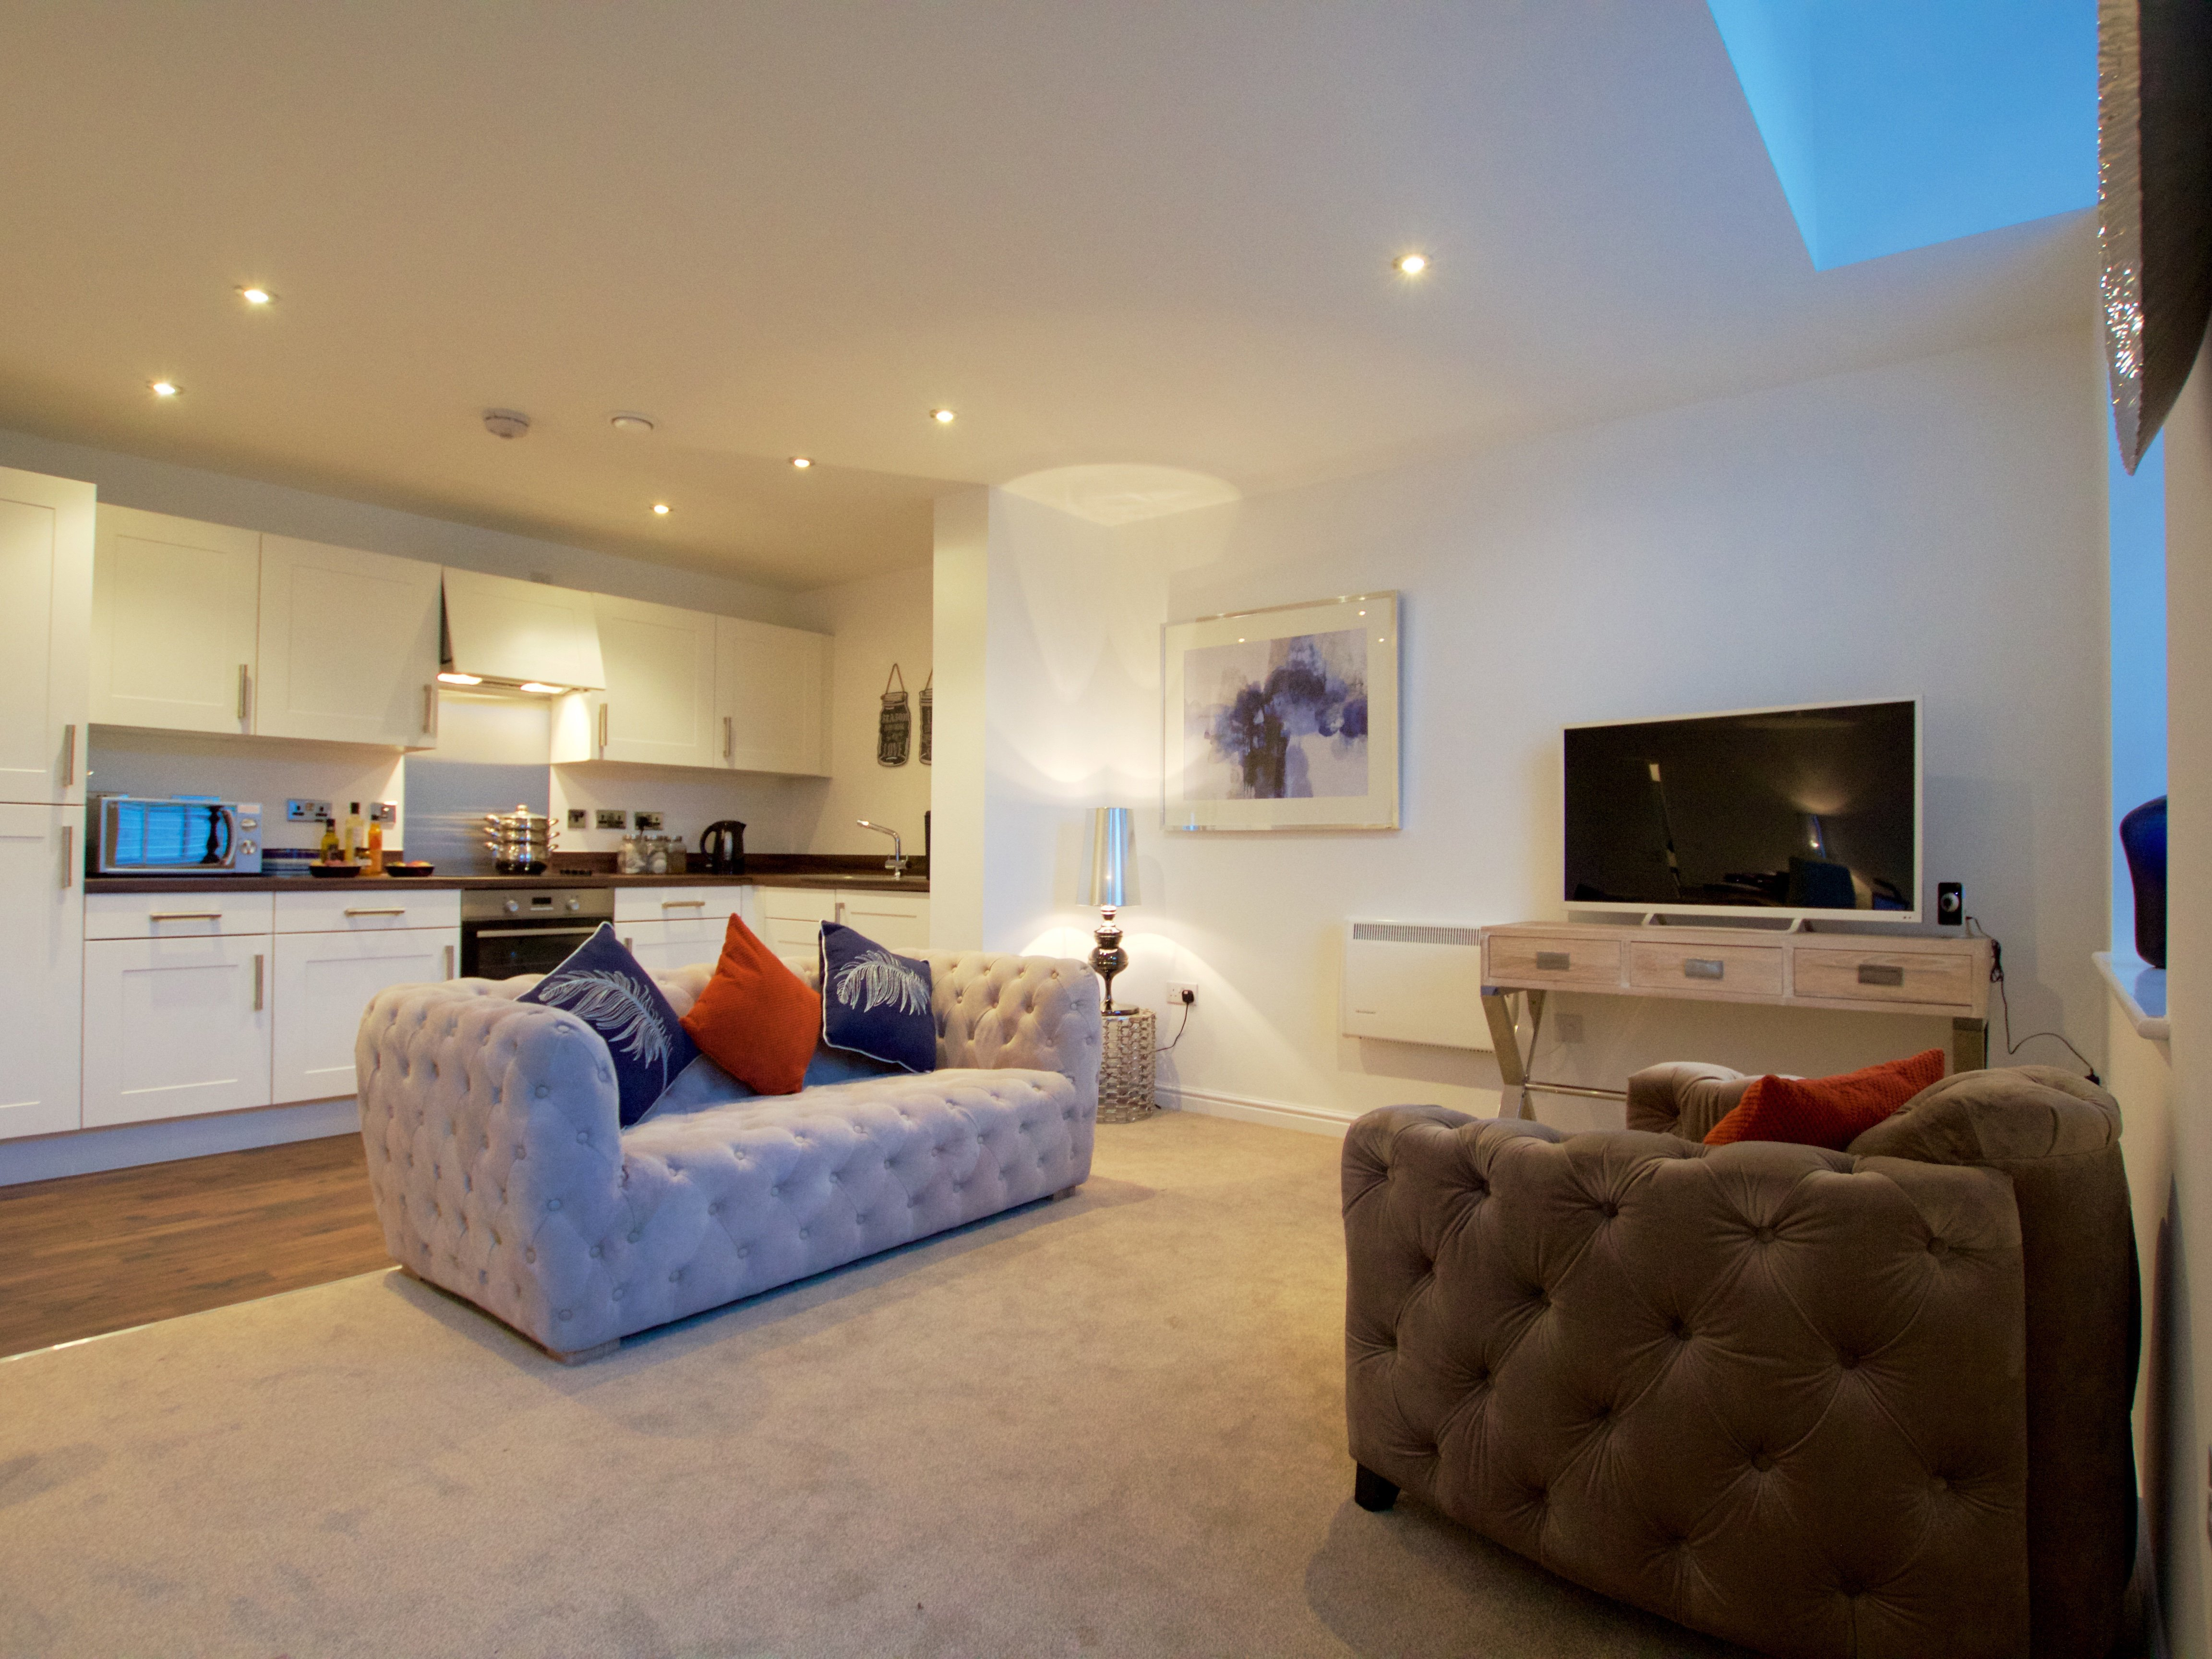 Best 2 Bedroom Flat For Sale In Colchester Essex Co3 0Rw With Pictures